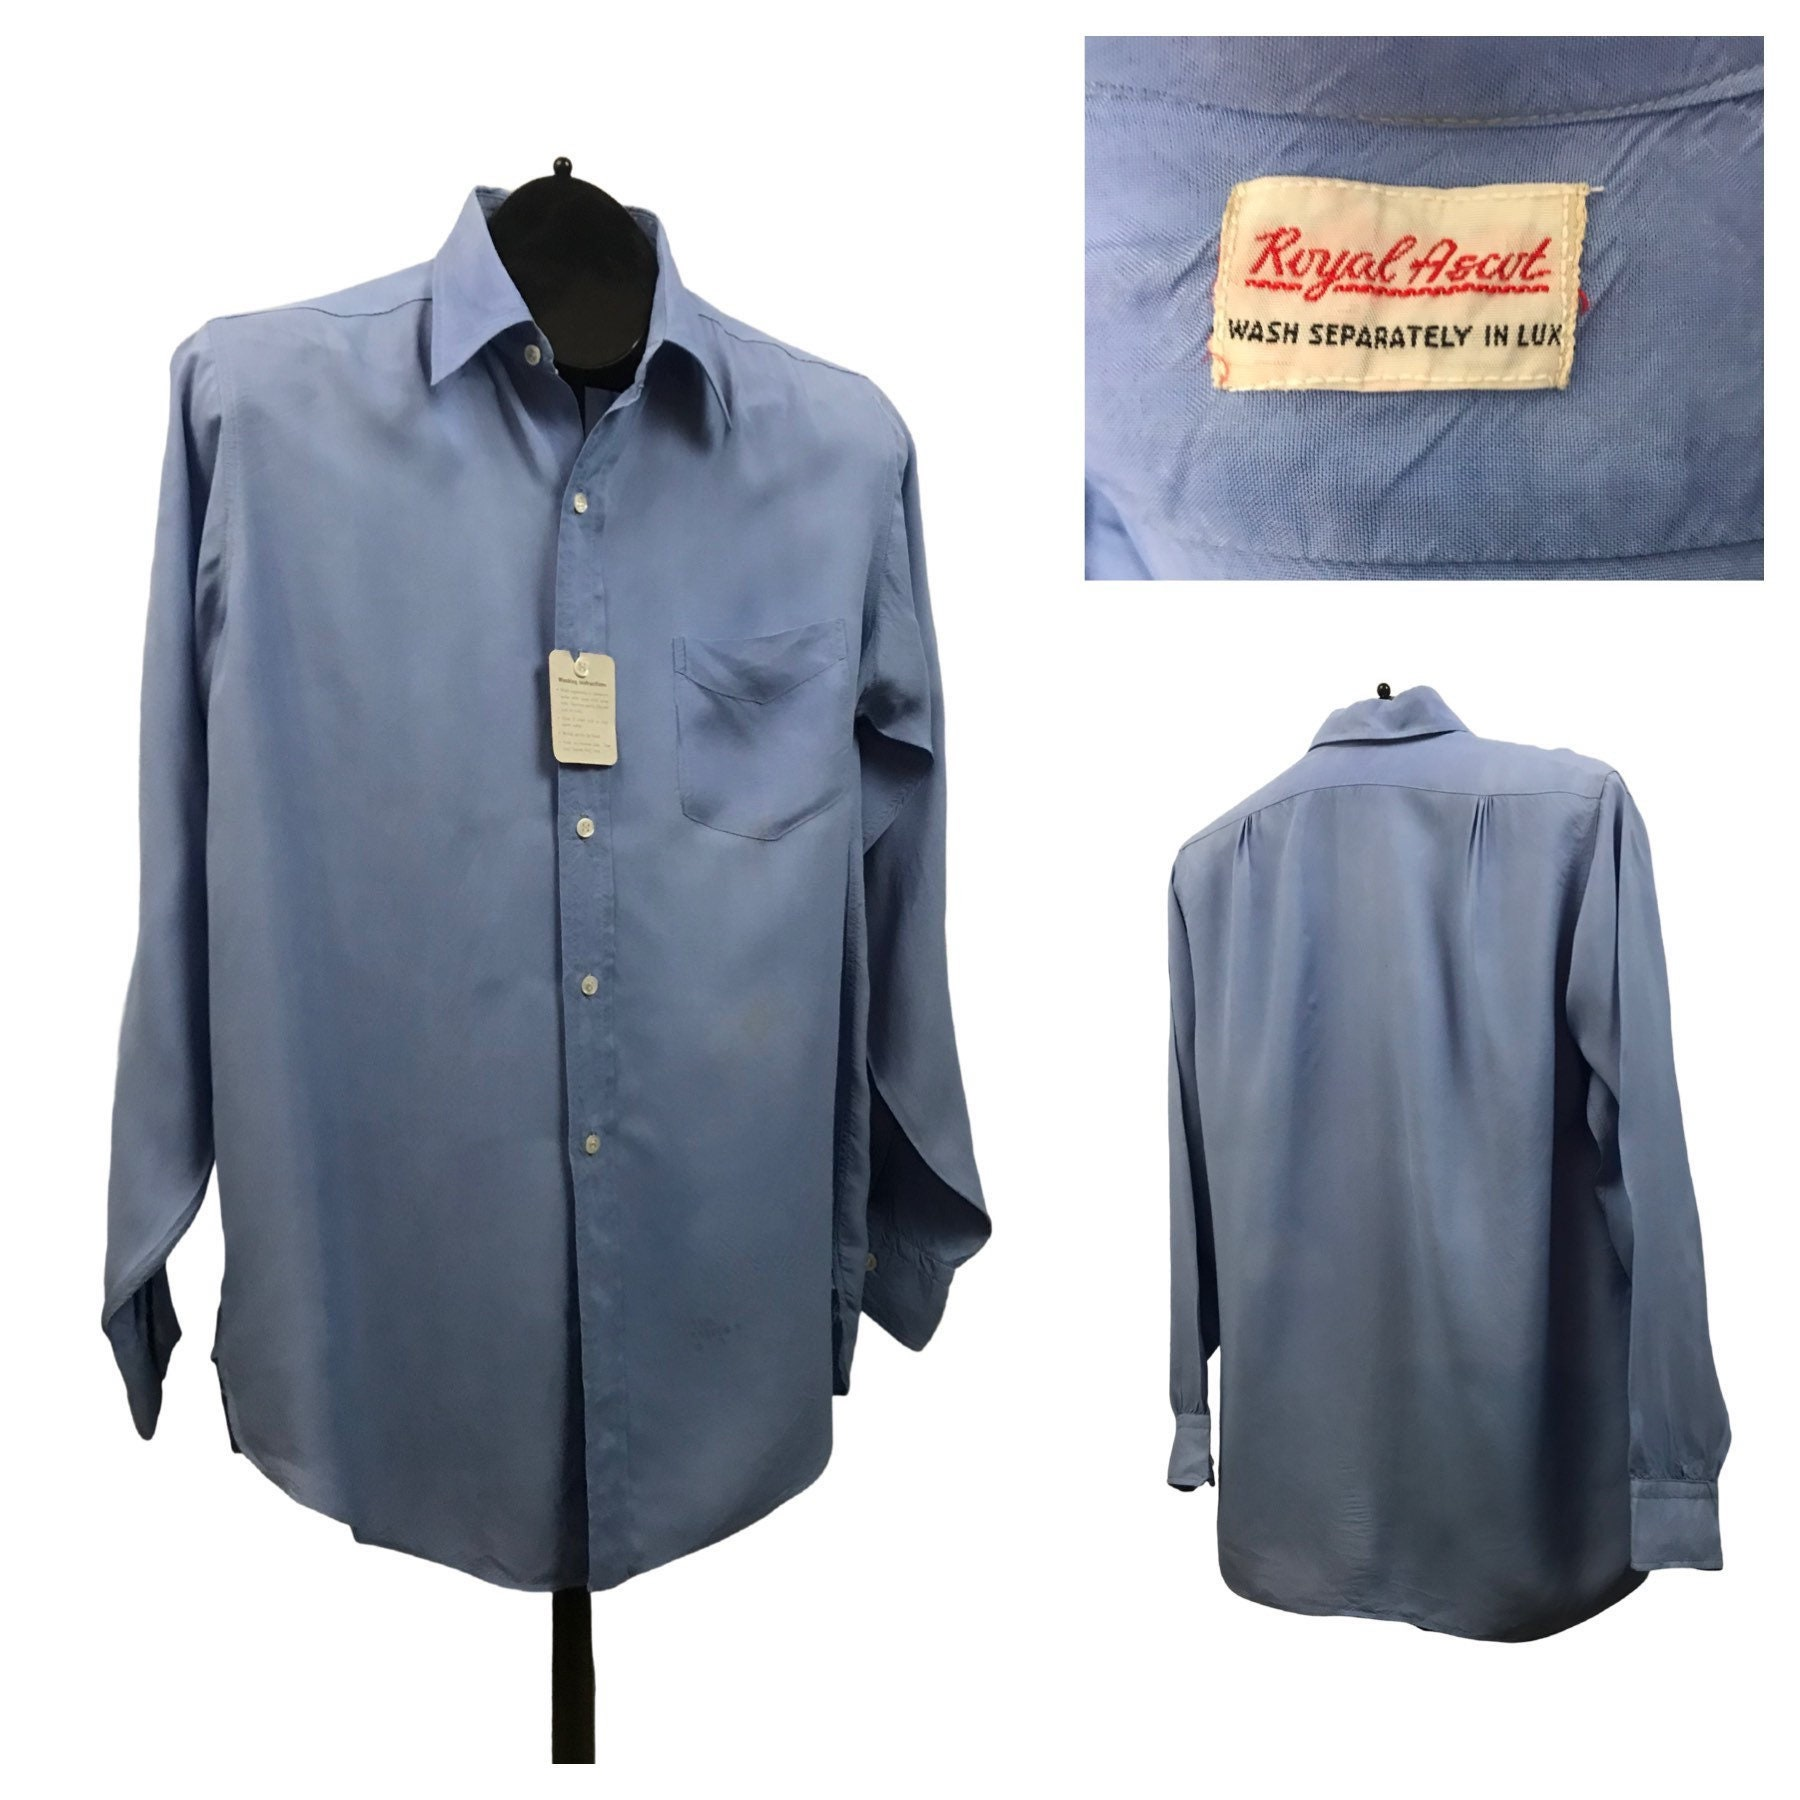 1940s Men's Shirts, Sweaters, Vests 1950S Button Down Shirt50S Nos Baby Blue Rayon Unworn Mens Medium $22.50 AT vintagedancer.com